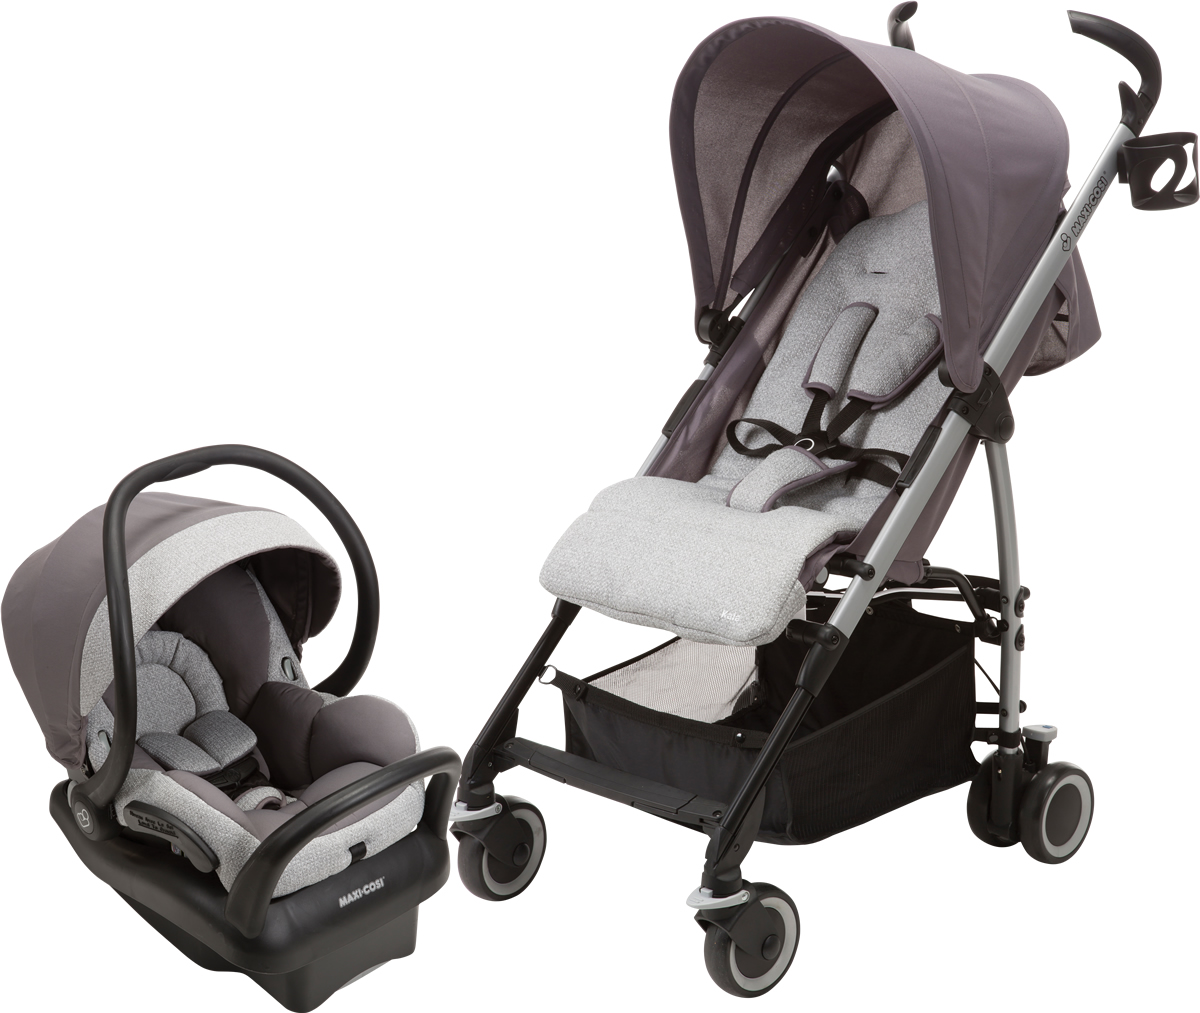 maxi cosi mico installation manual